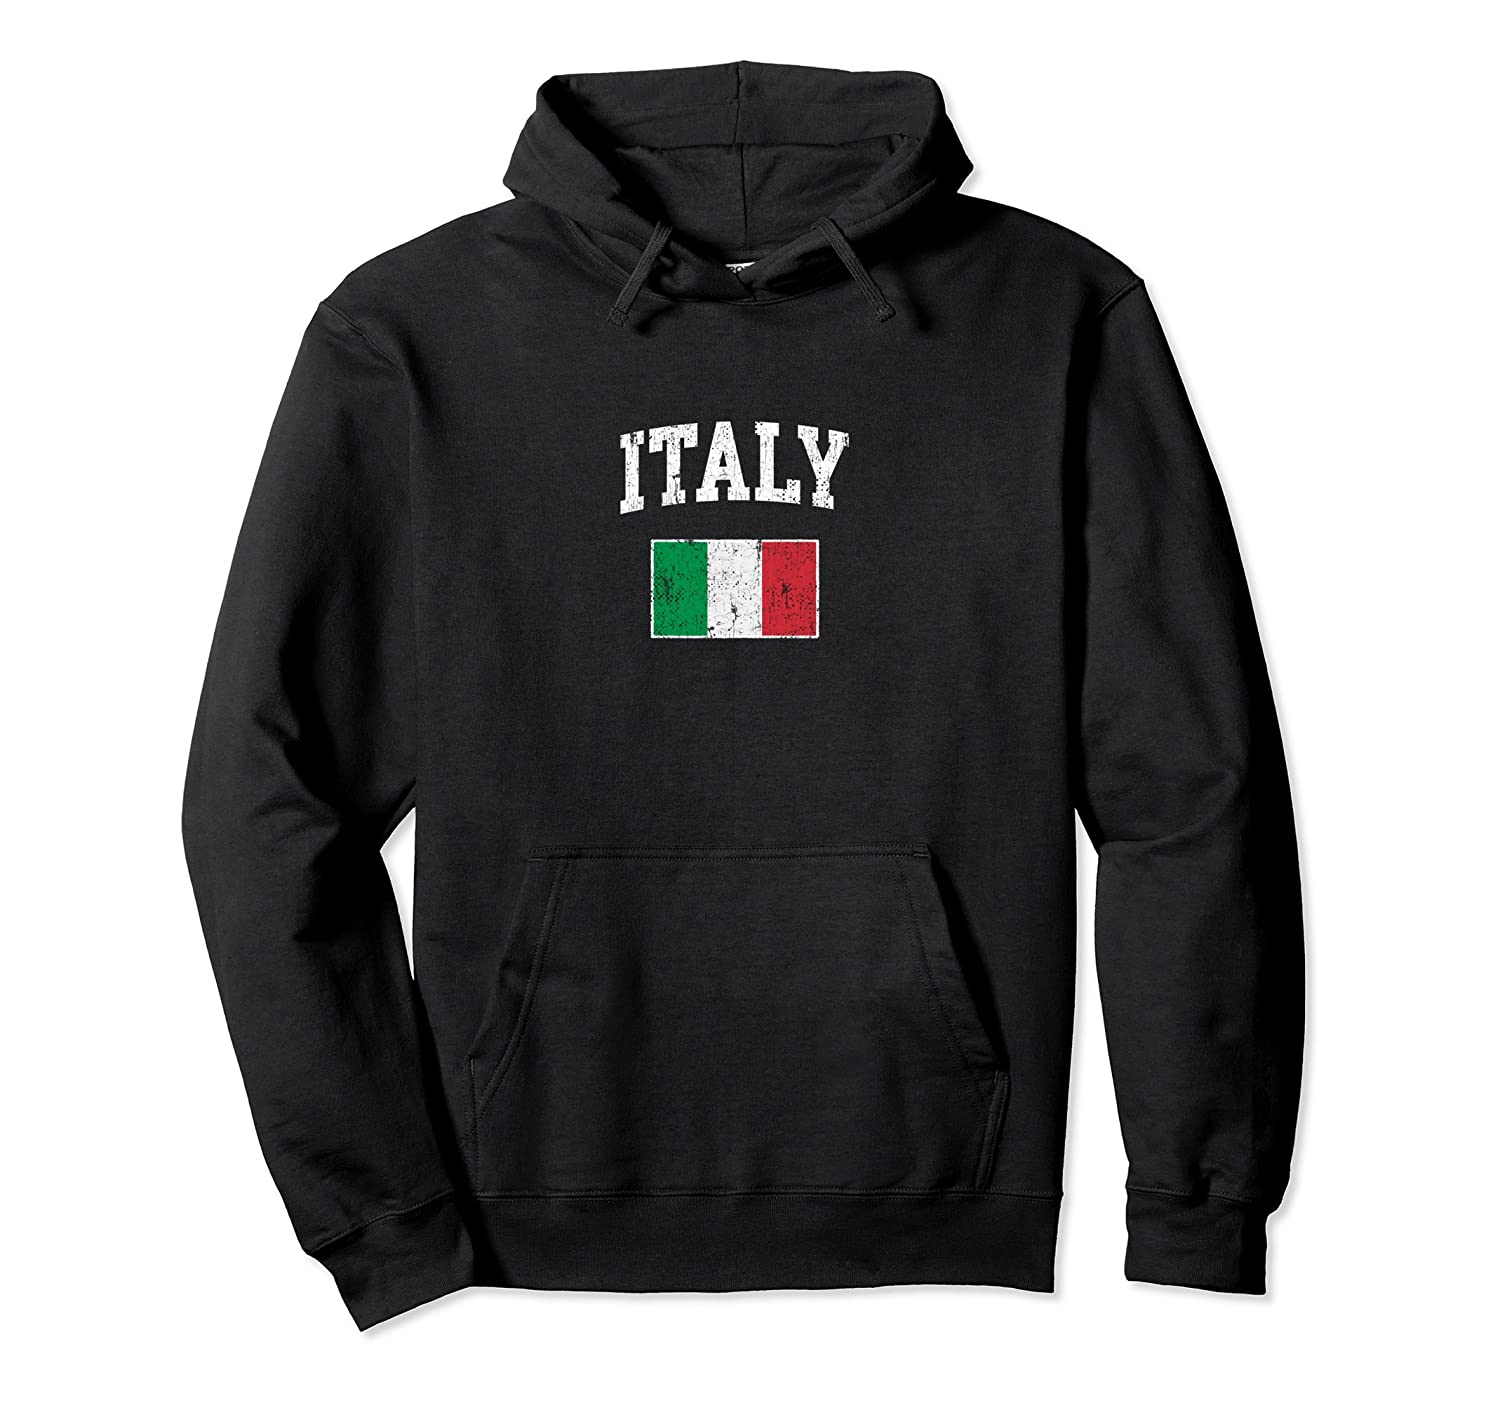 Vintage Italy Flag Pullover Hoodie College Shirt-Samdetee